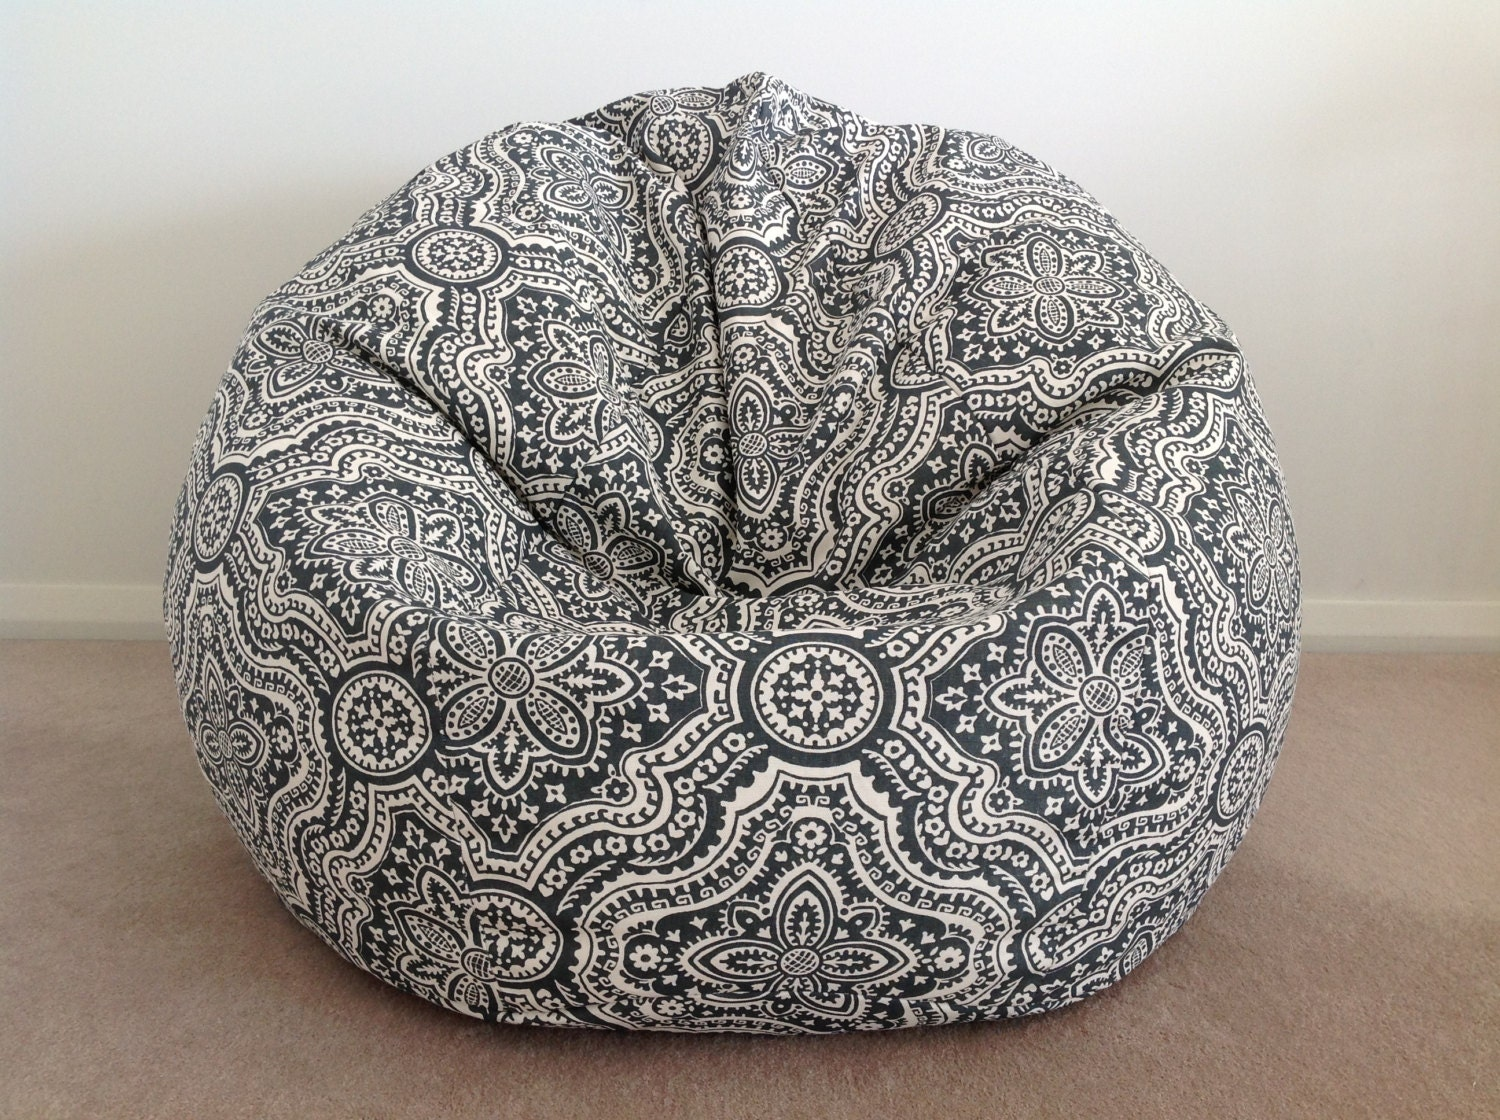 Bean bag chairs for teenage girls - Like This Item